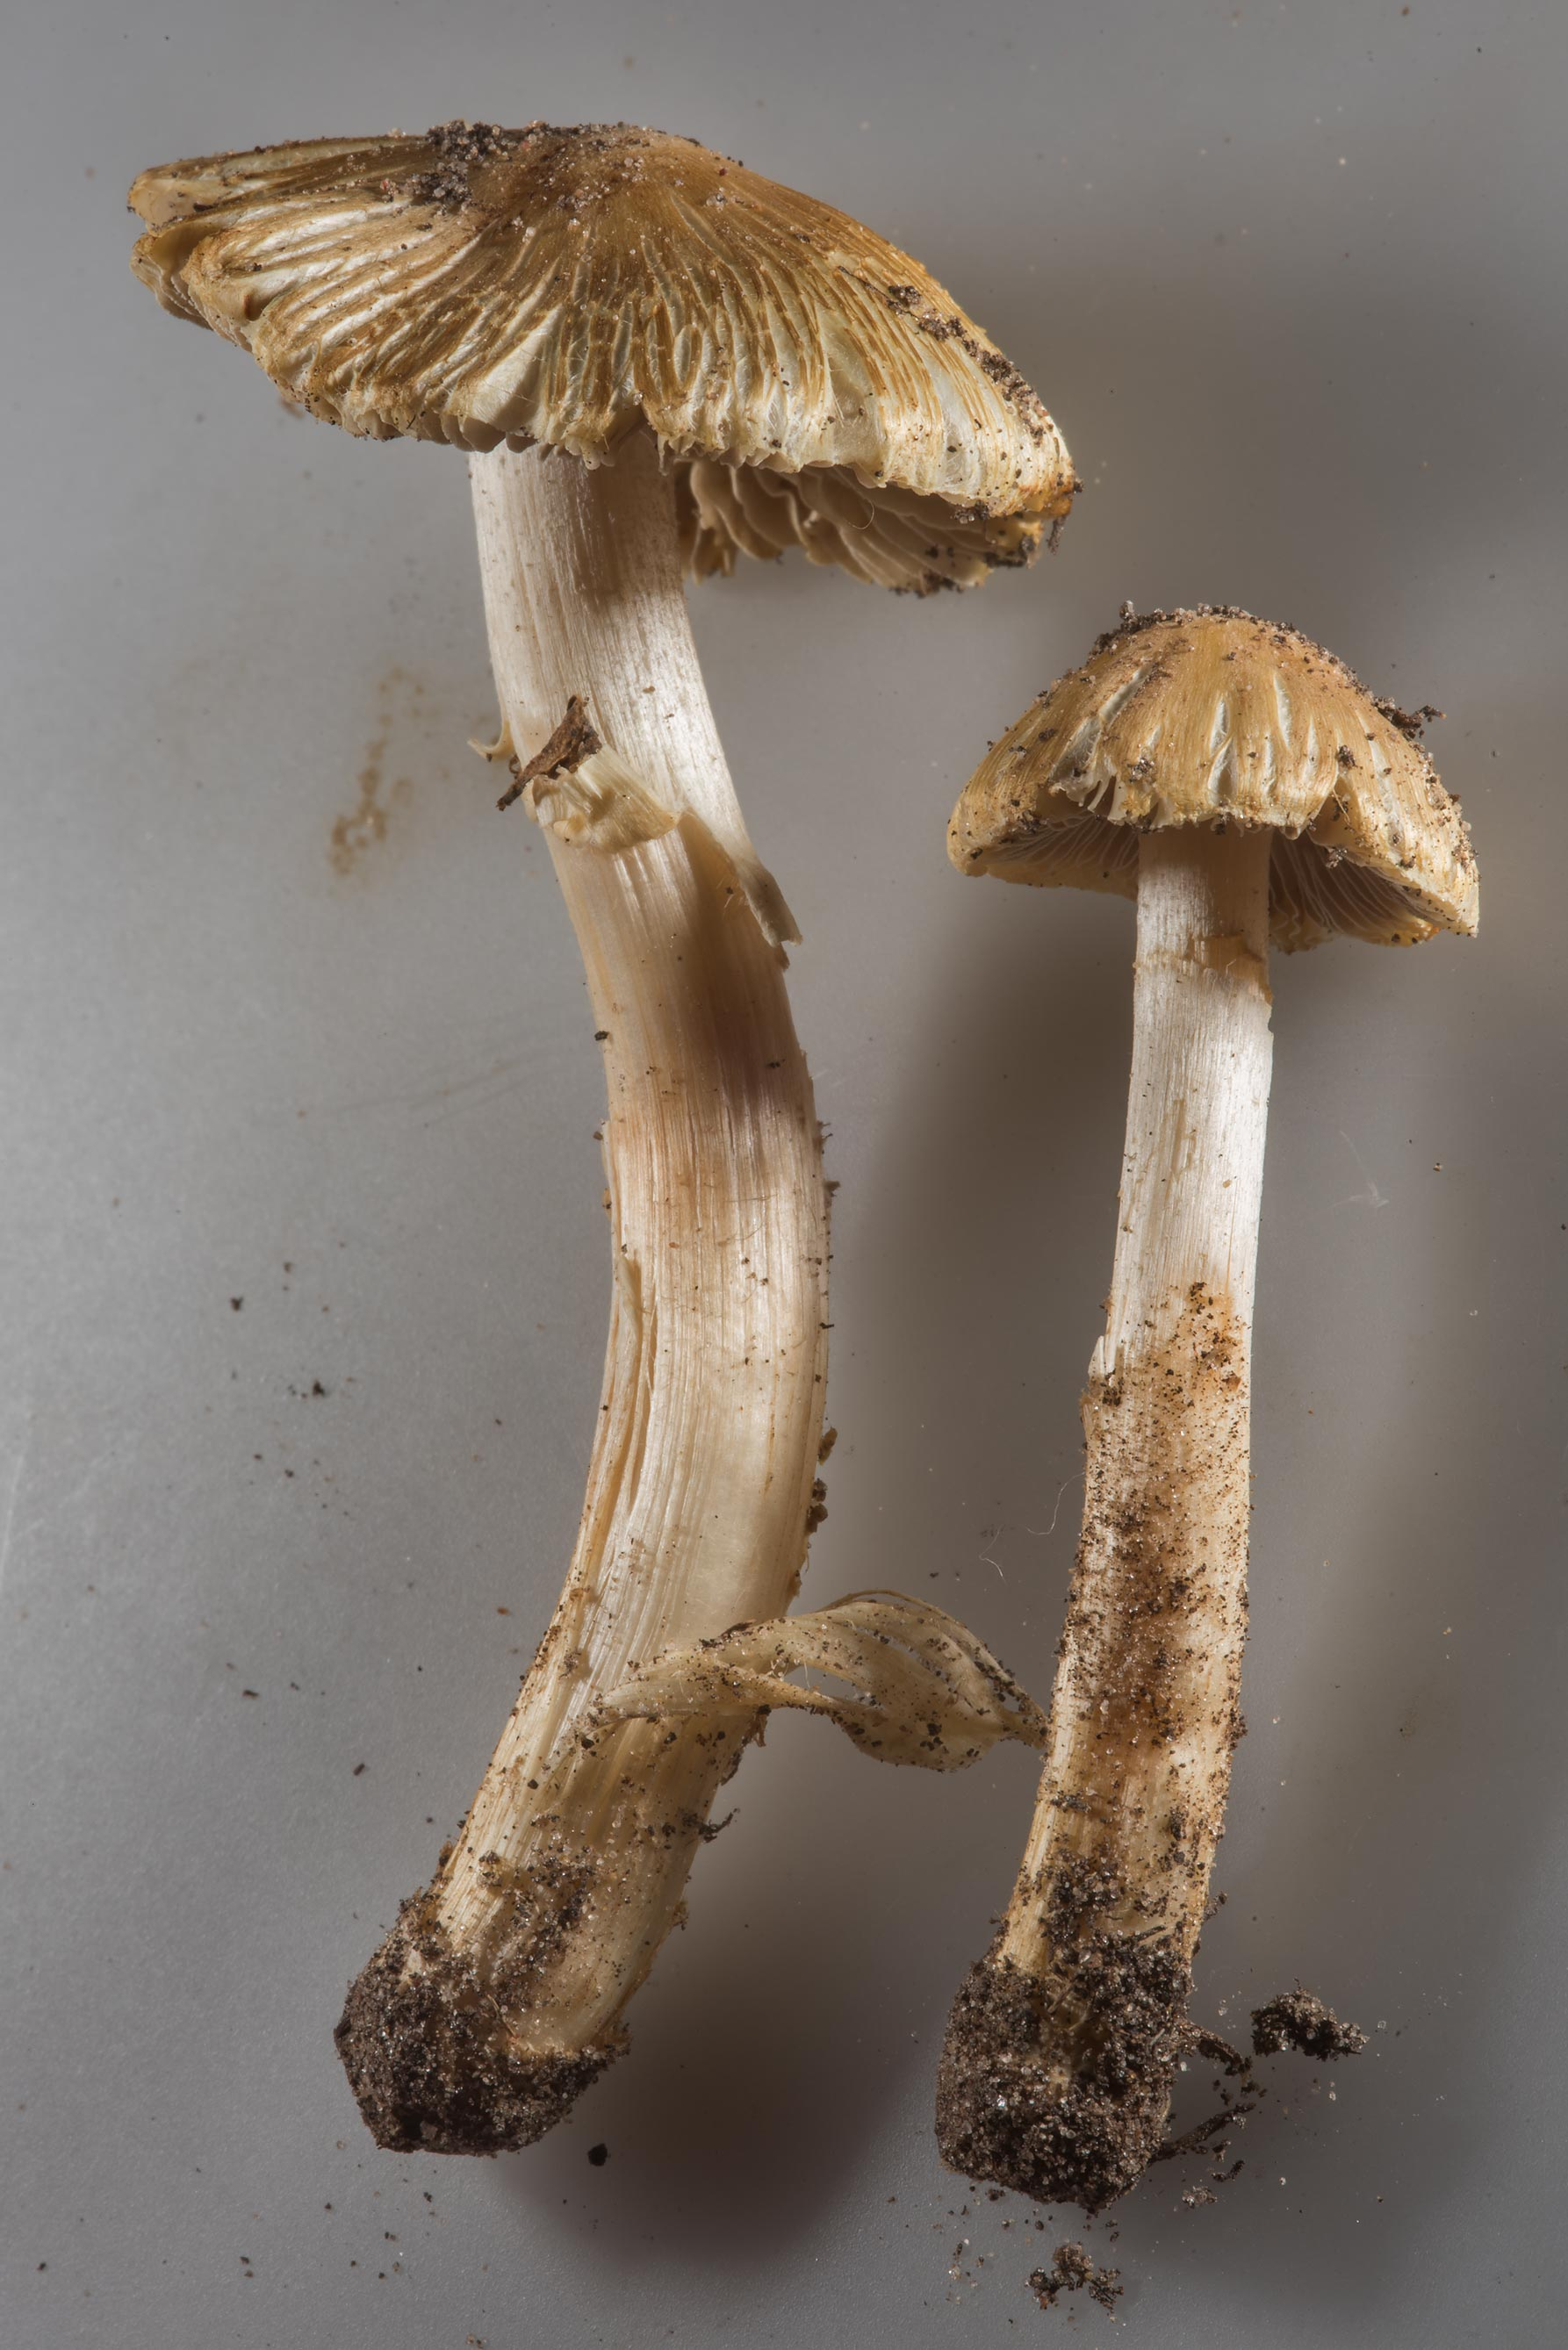 Fibrecap mushrooms Inocybe rimosa taken from a...Anderson St.. College Station, Texas